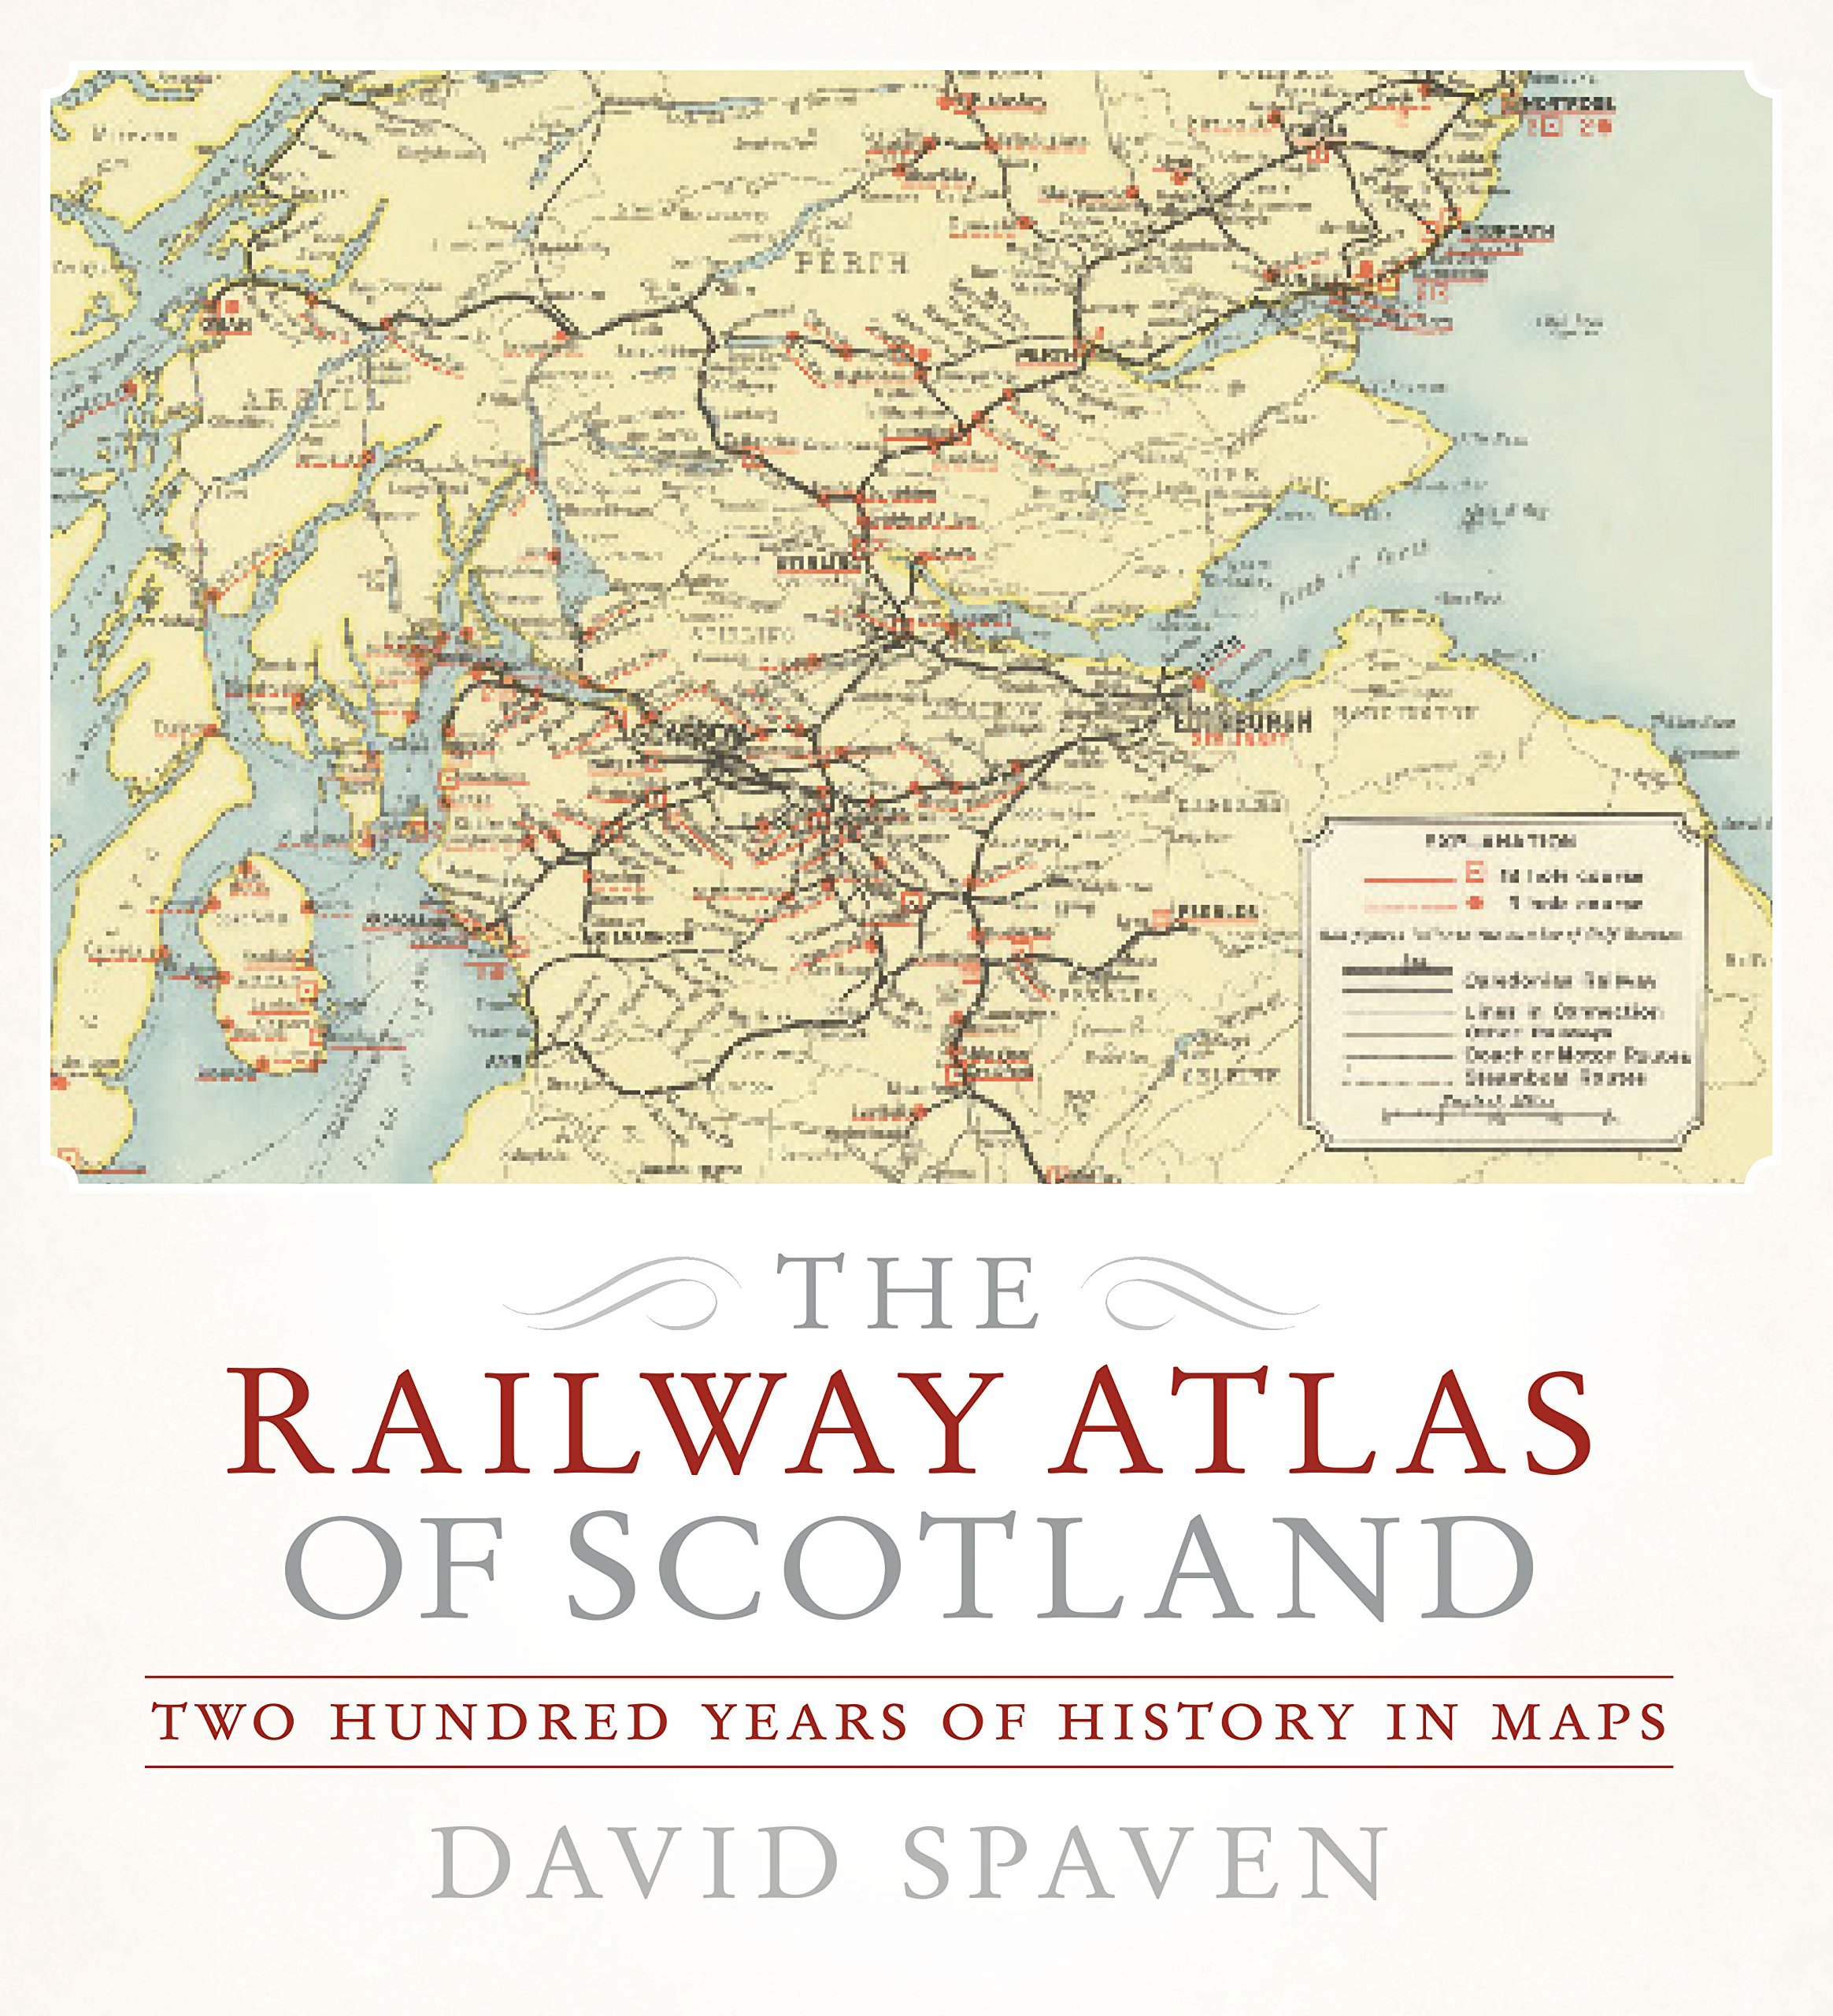 The railway atlas of scotland two hundred years of history in maps the railway atlas of scotland two hundred years of history in maps amazon david spaven 9781780272382 books gumiabroncs Image collections